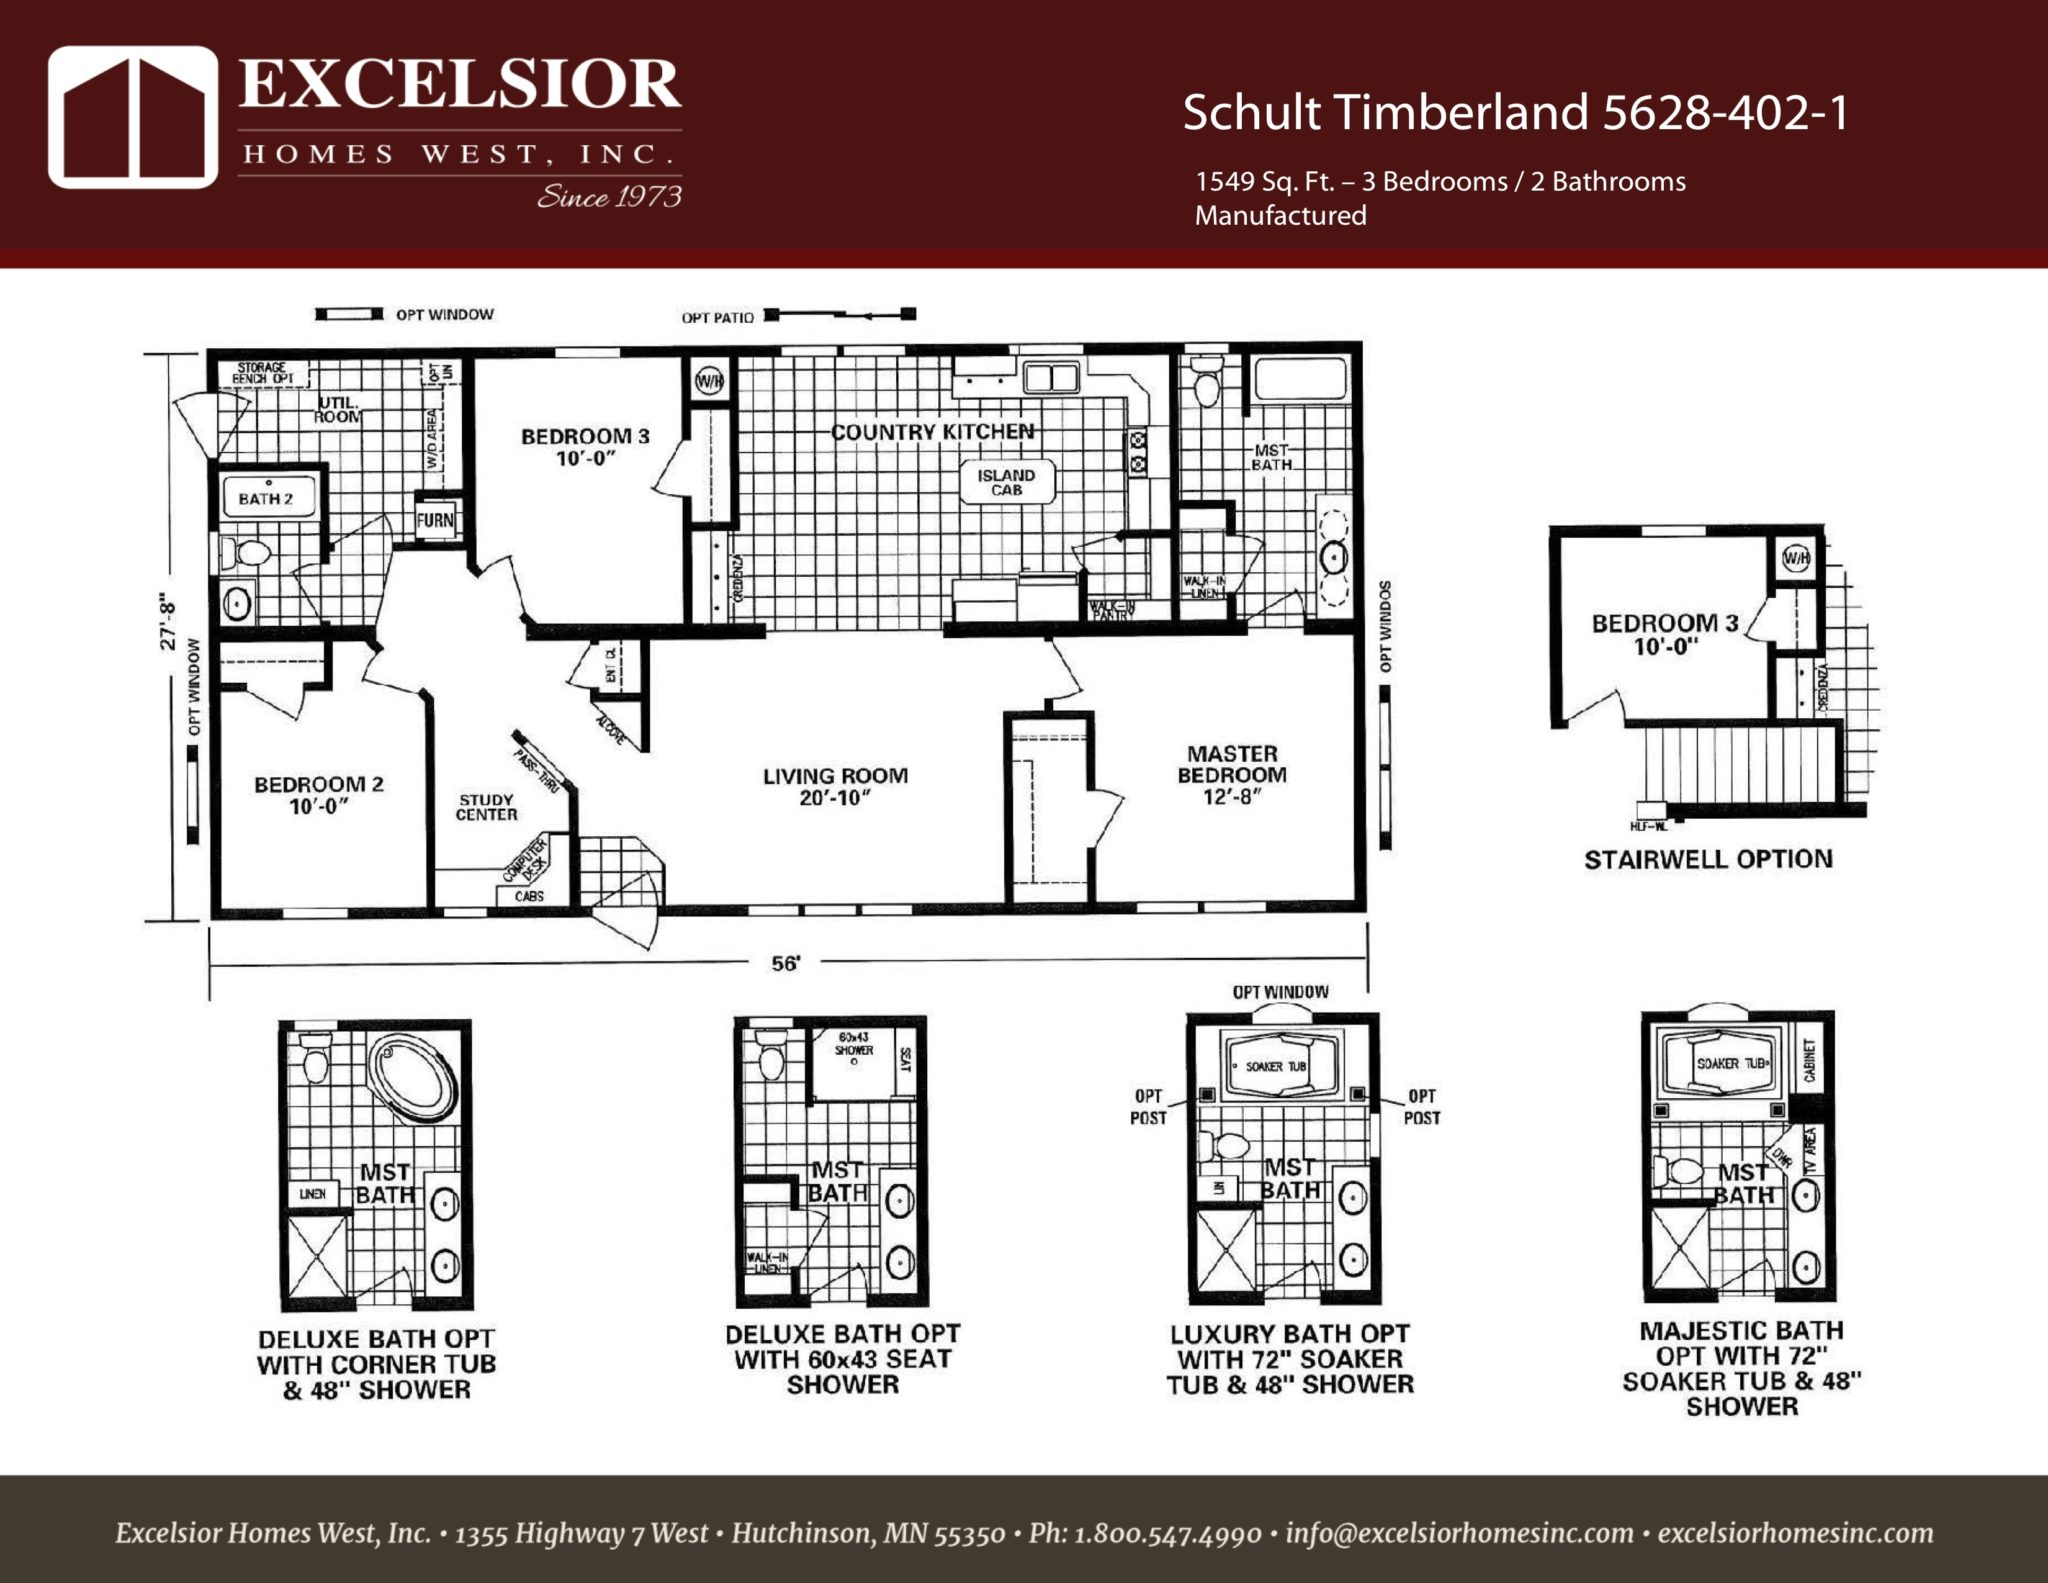 Schult timberland 5628 402 1 excelsior homes west inc for Timberline homes floor plans